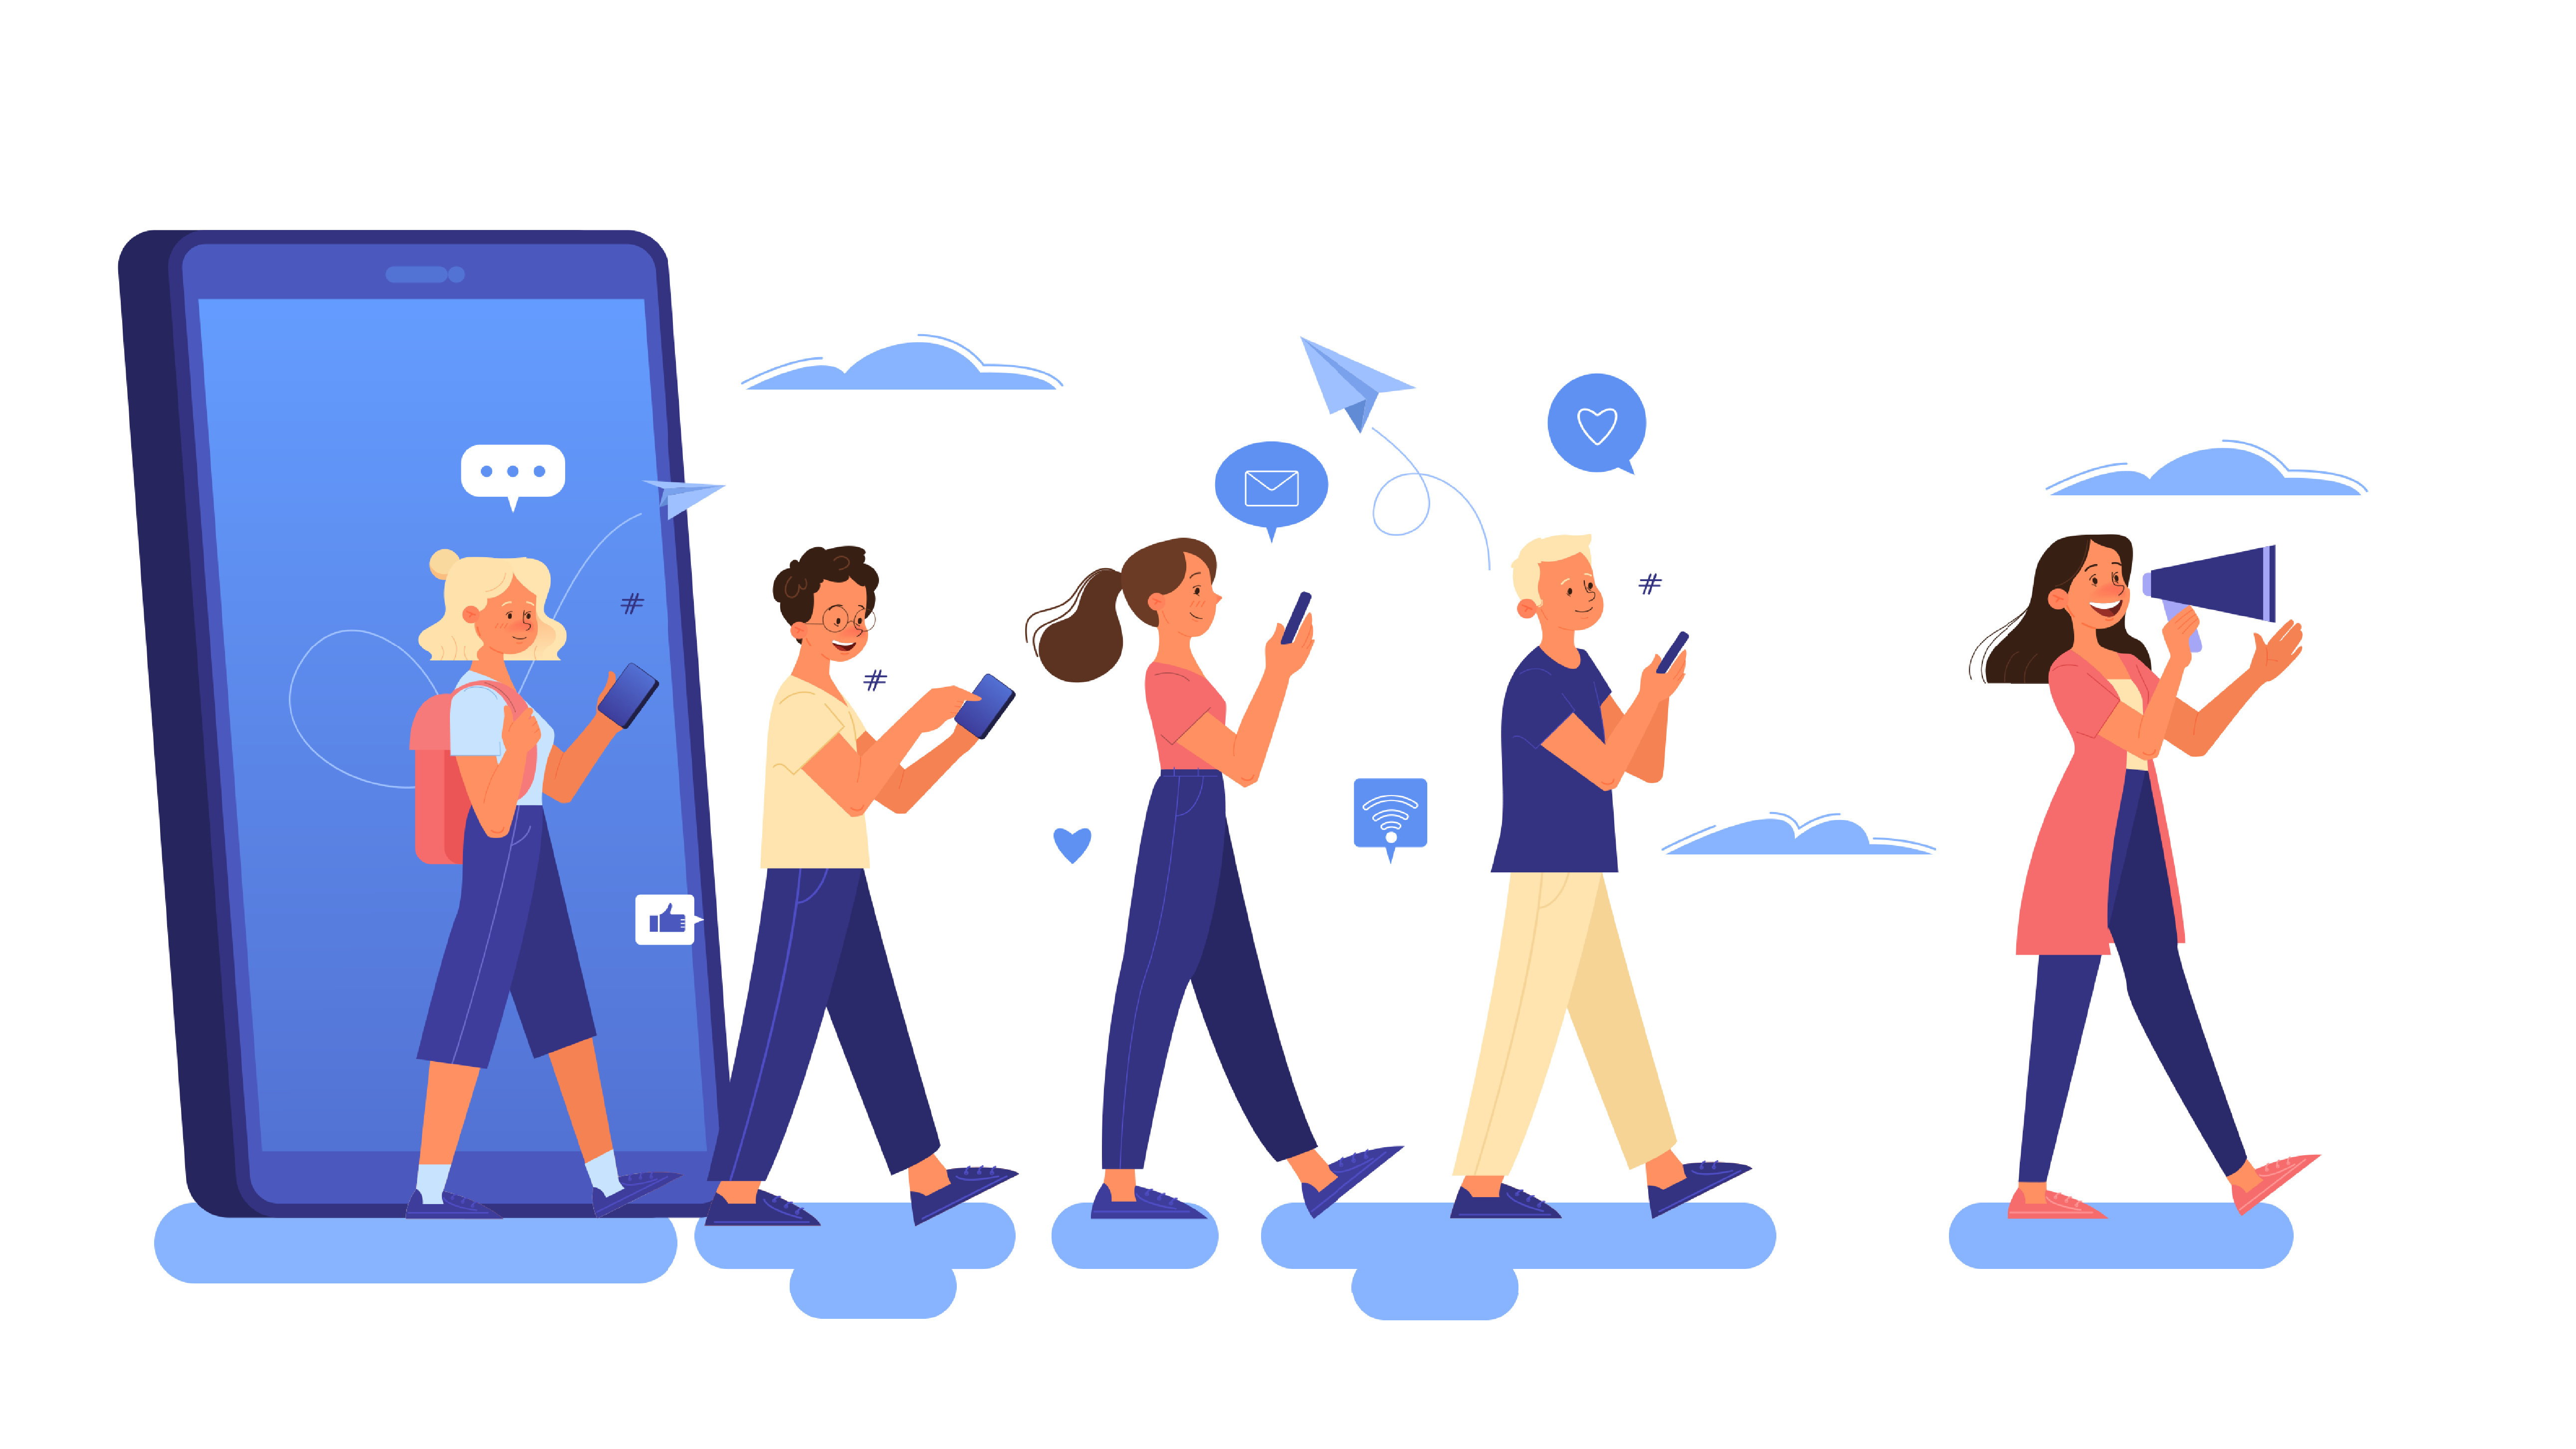 Illustration of people using cell phones with social media icons and thought bubbles